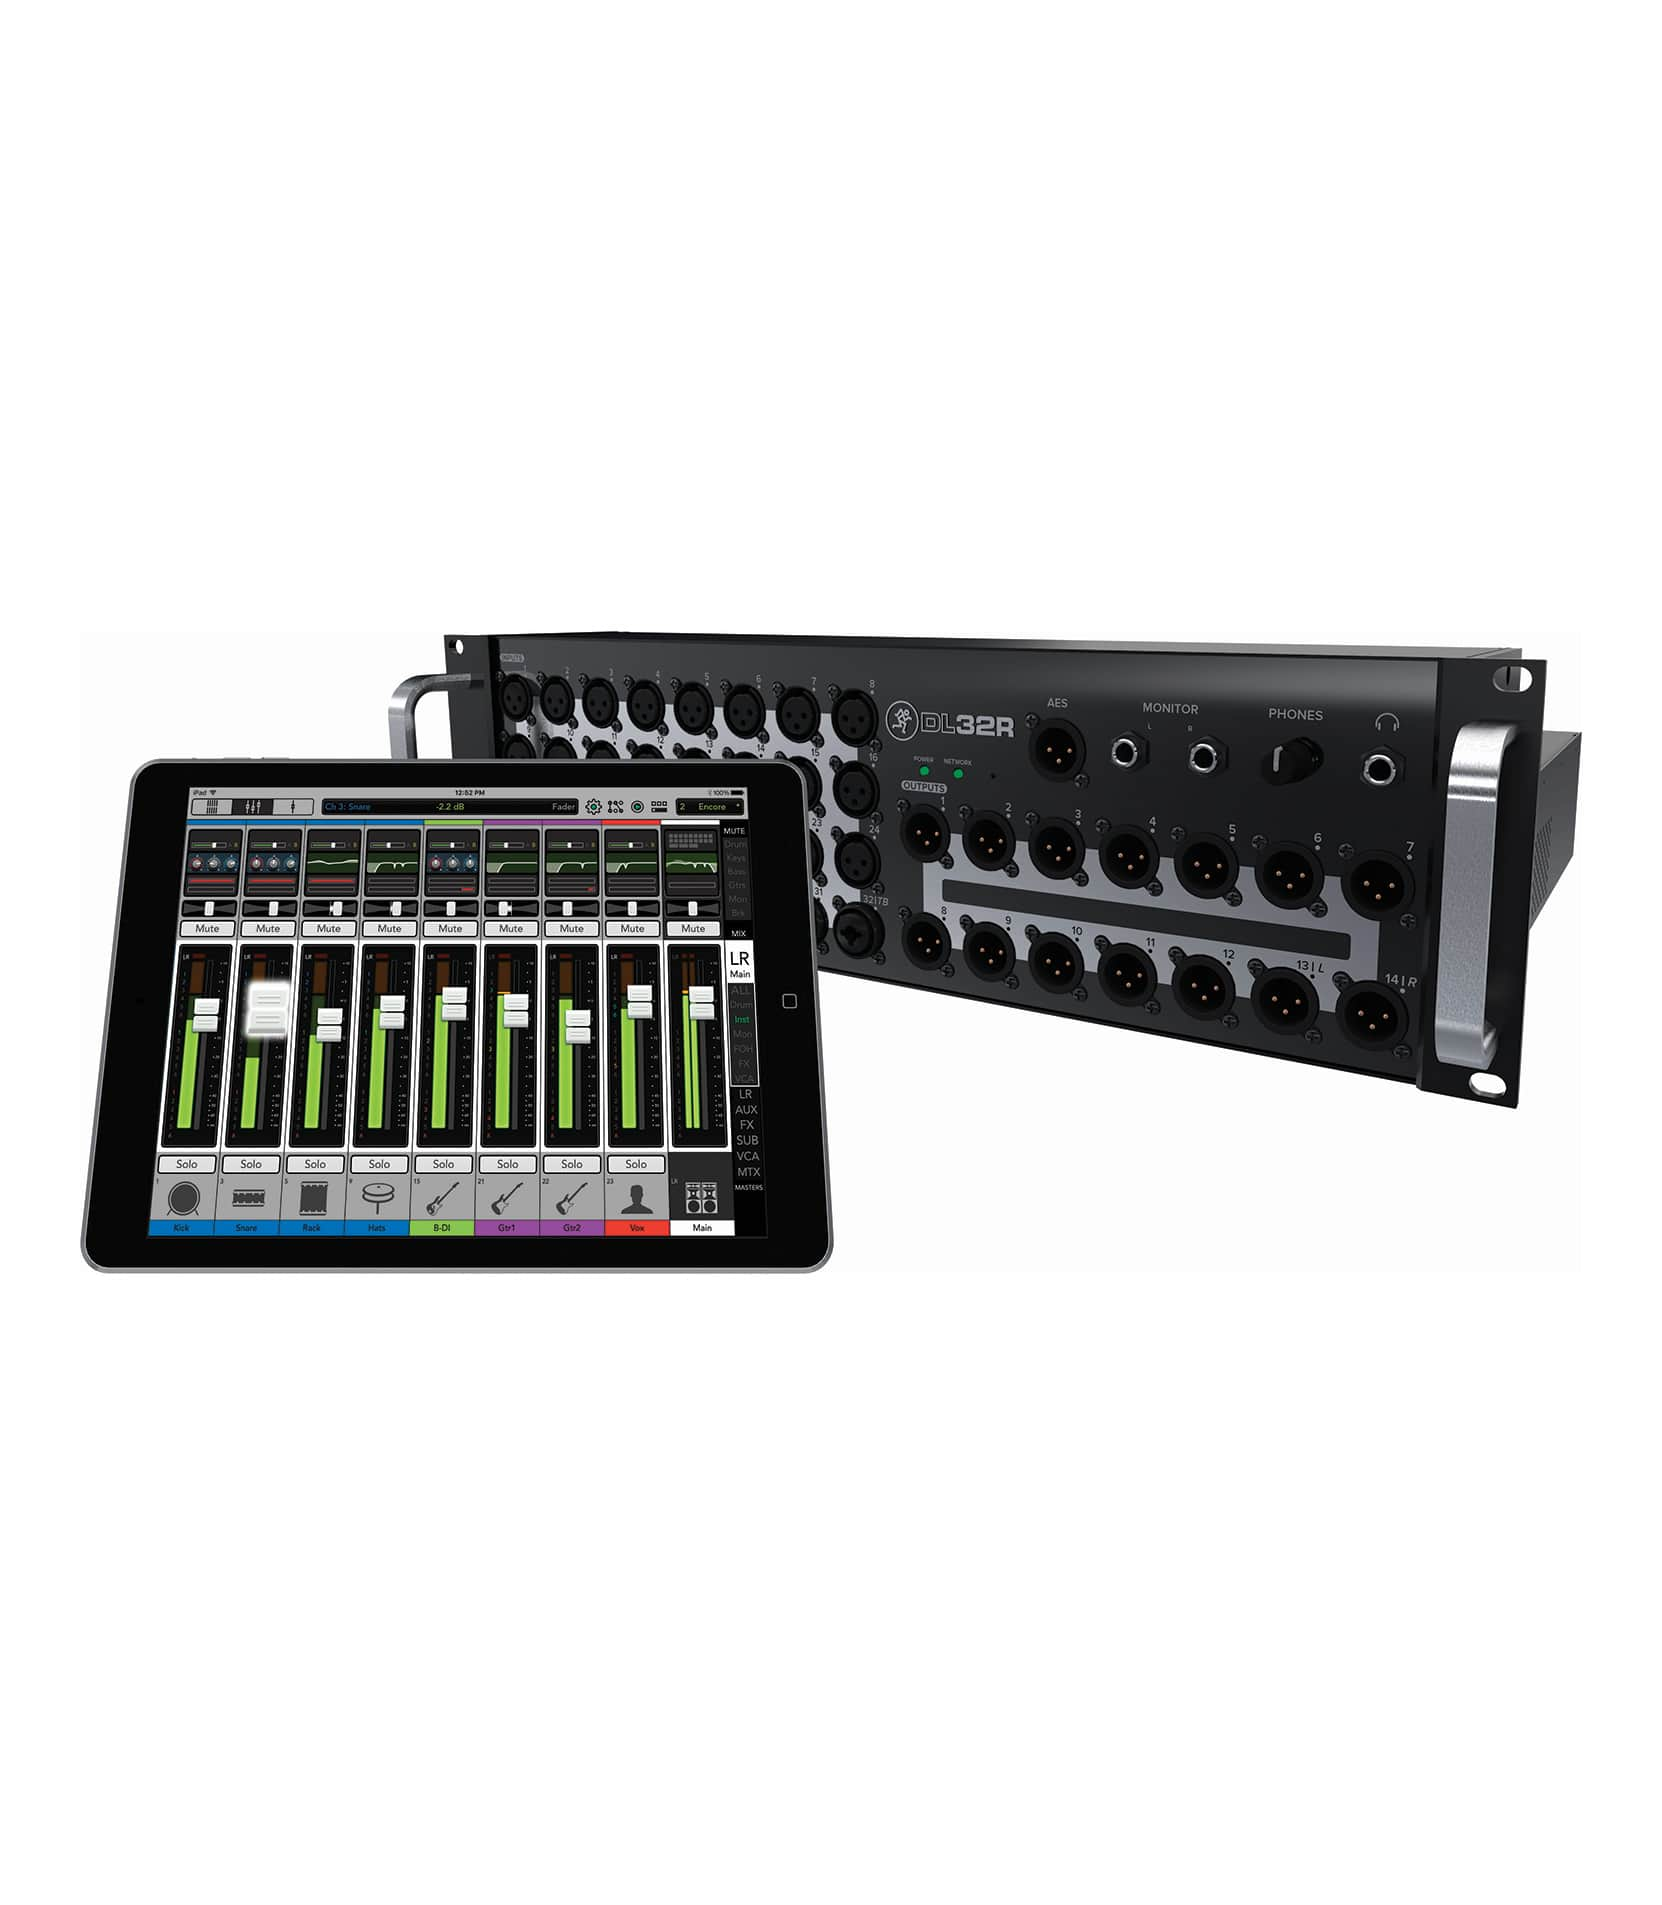 DL32R 32channel Wireless Digital Live Sound Mixer - Buy Online